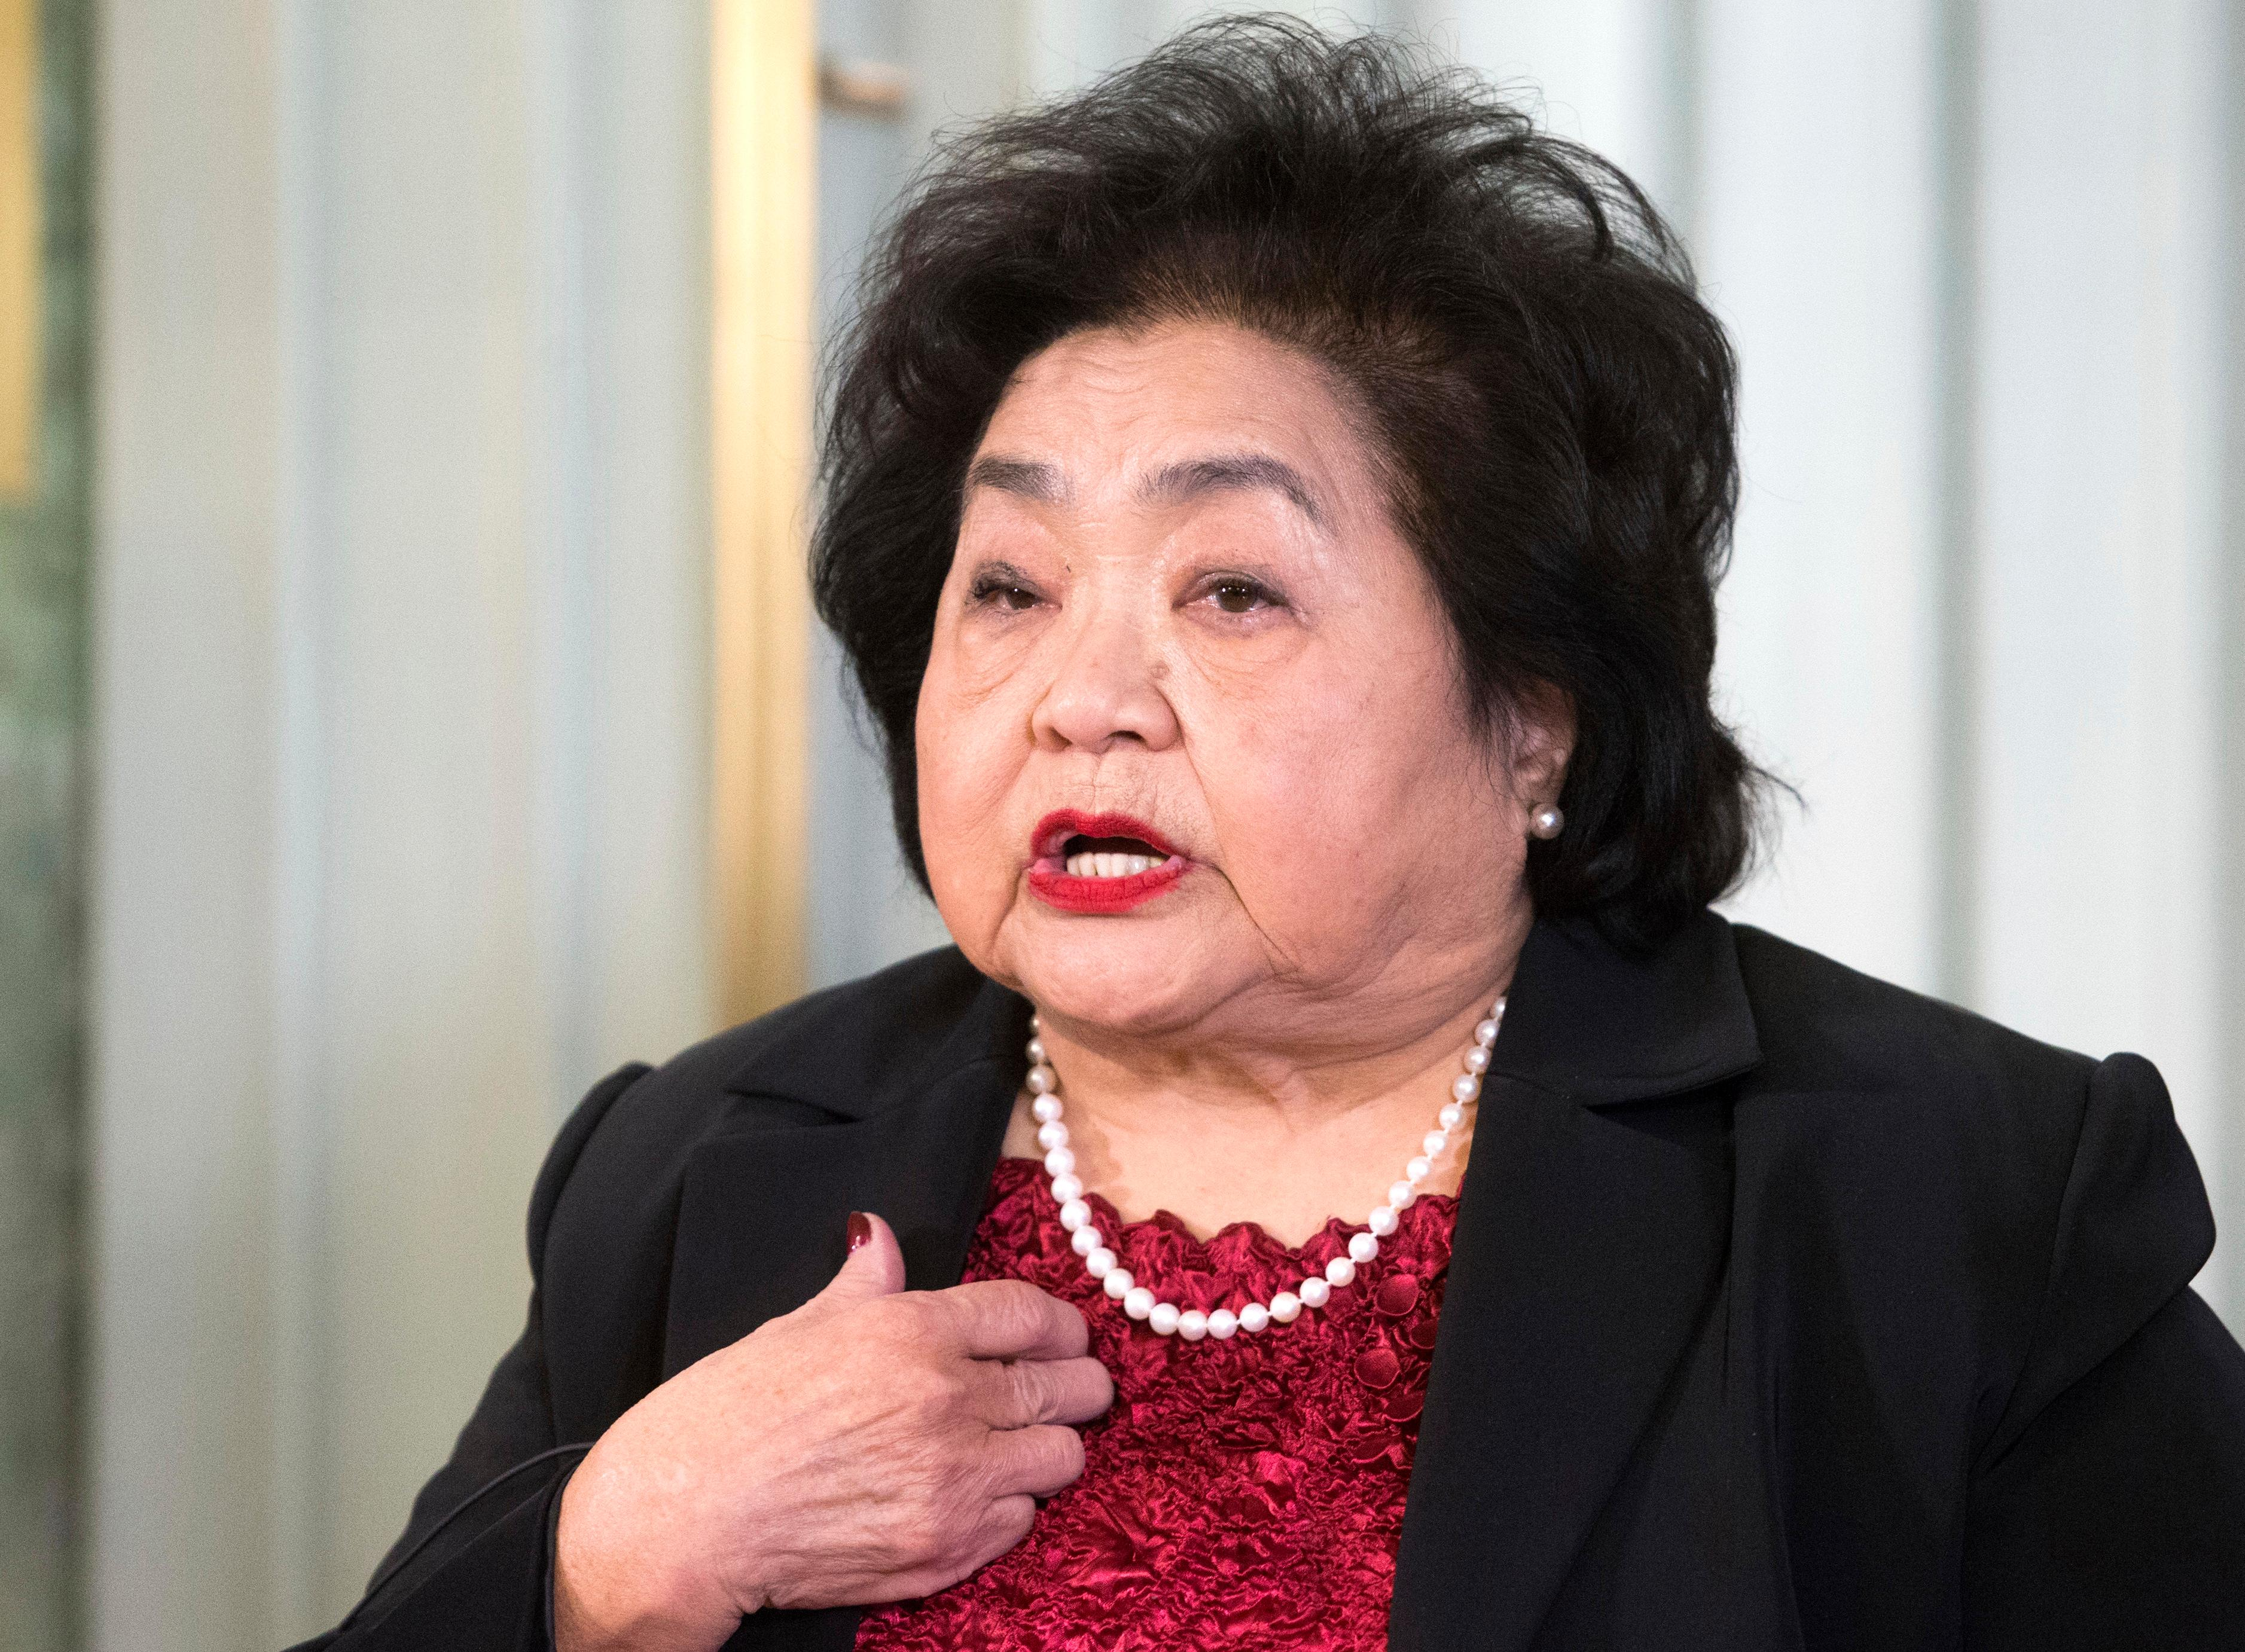 CAPTION CORRECTS THE DAY  ICAN campaigner and Hiroshima survivor, Setsuko Thurlow speaks during a press conference with ICAN (International Campaign to Abolish Nuclear Weapons), In Oslo, Norway, Saturday, Dec. 9, 2017.  ICAN are set to receive the Nobel Peace Prize on Sunday.  (Audun Braastad/NTB scanpix via AP)